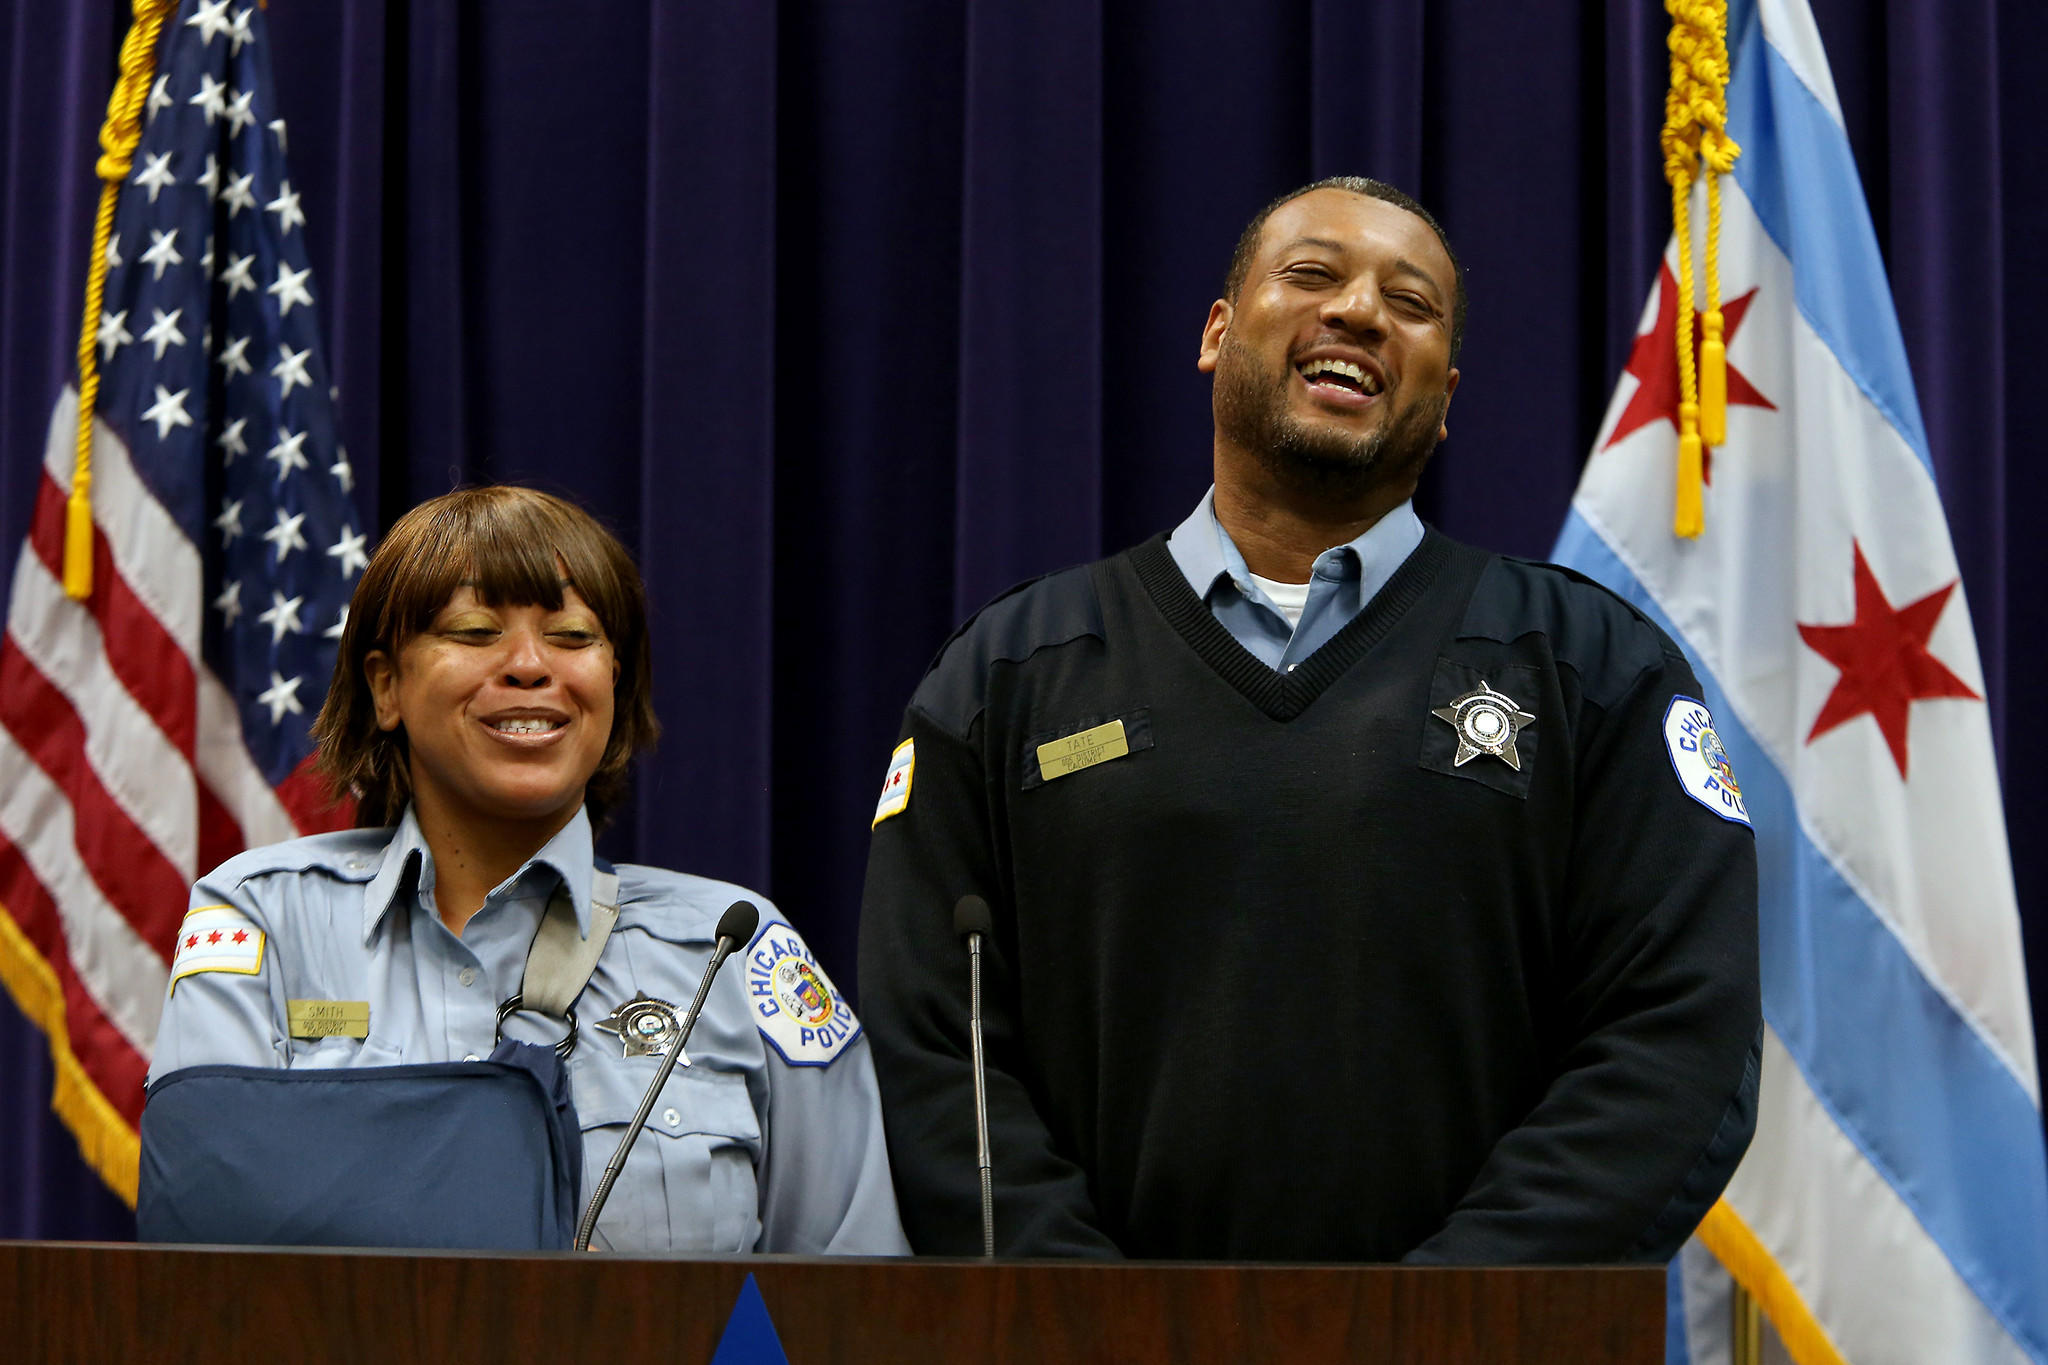 Chicago police officers Samanthia Smith and Kevin Tate replay their rescue of two boys from a fire.